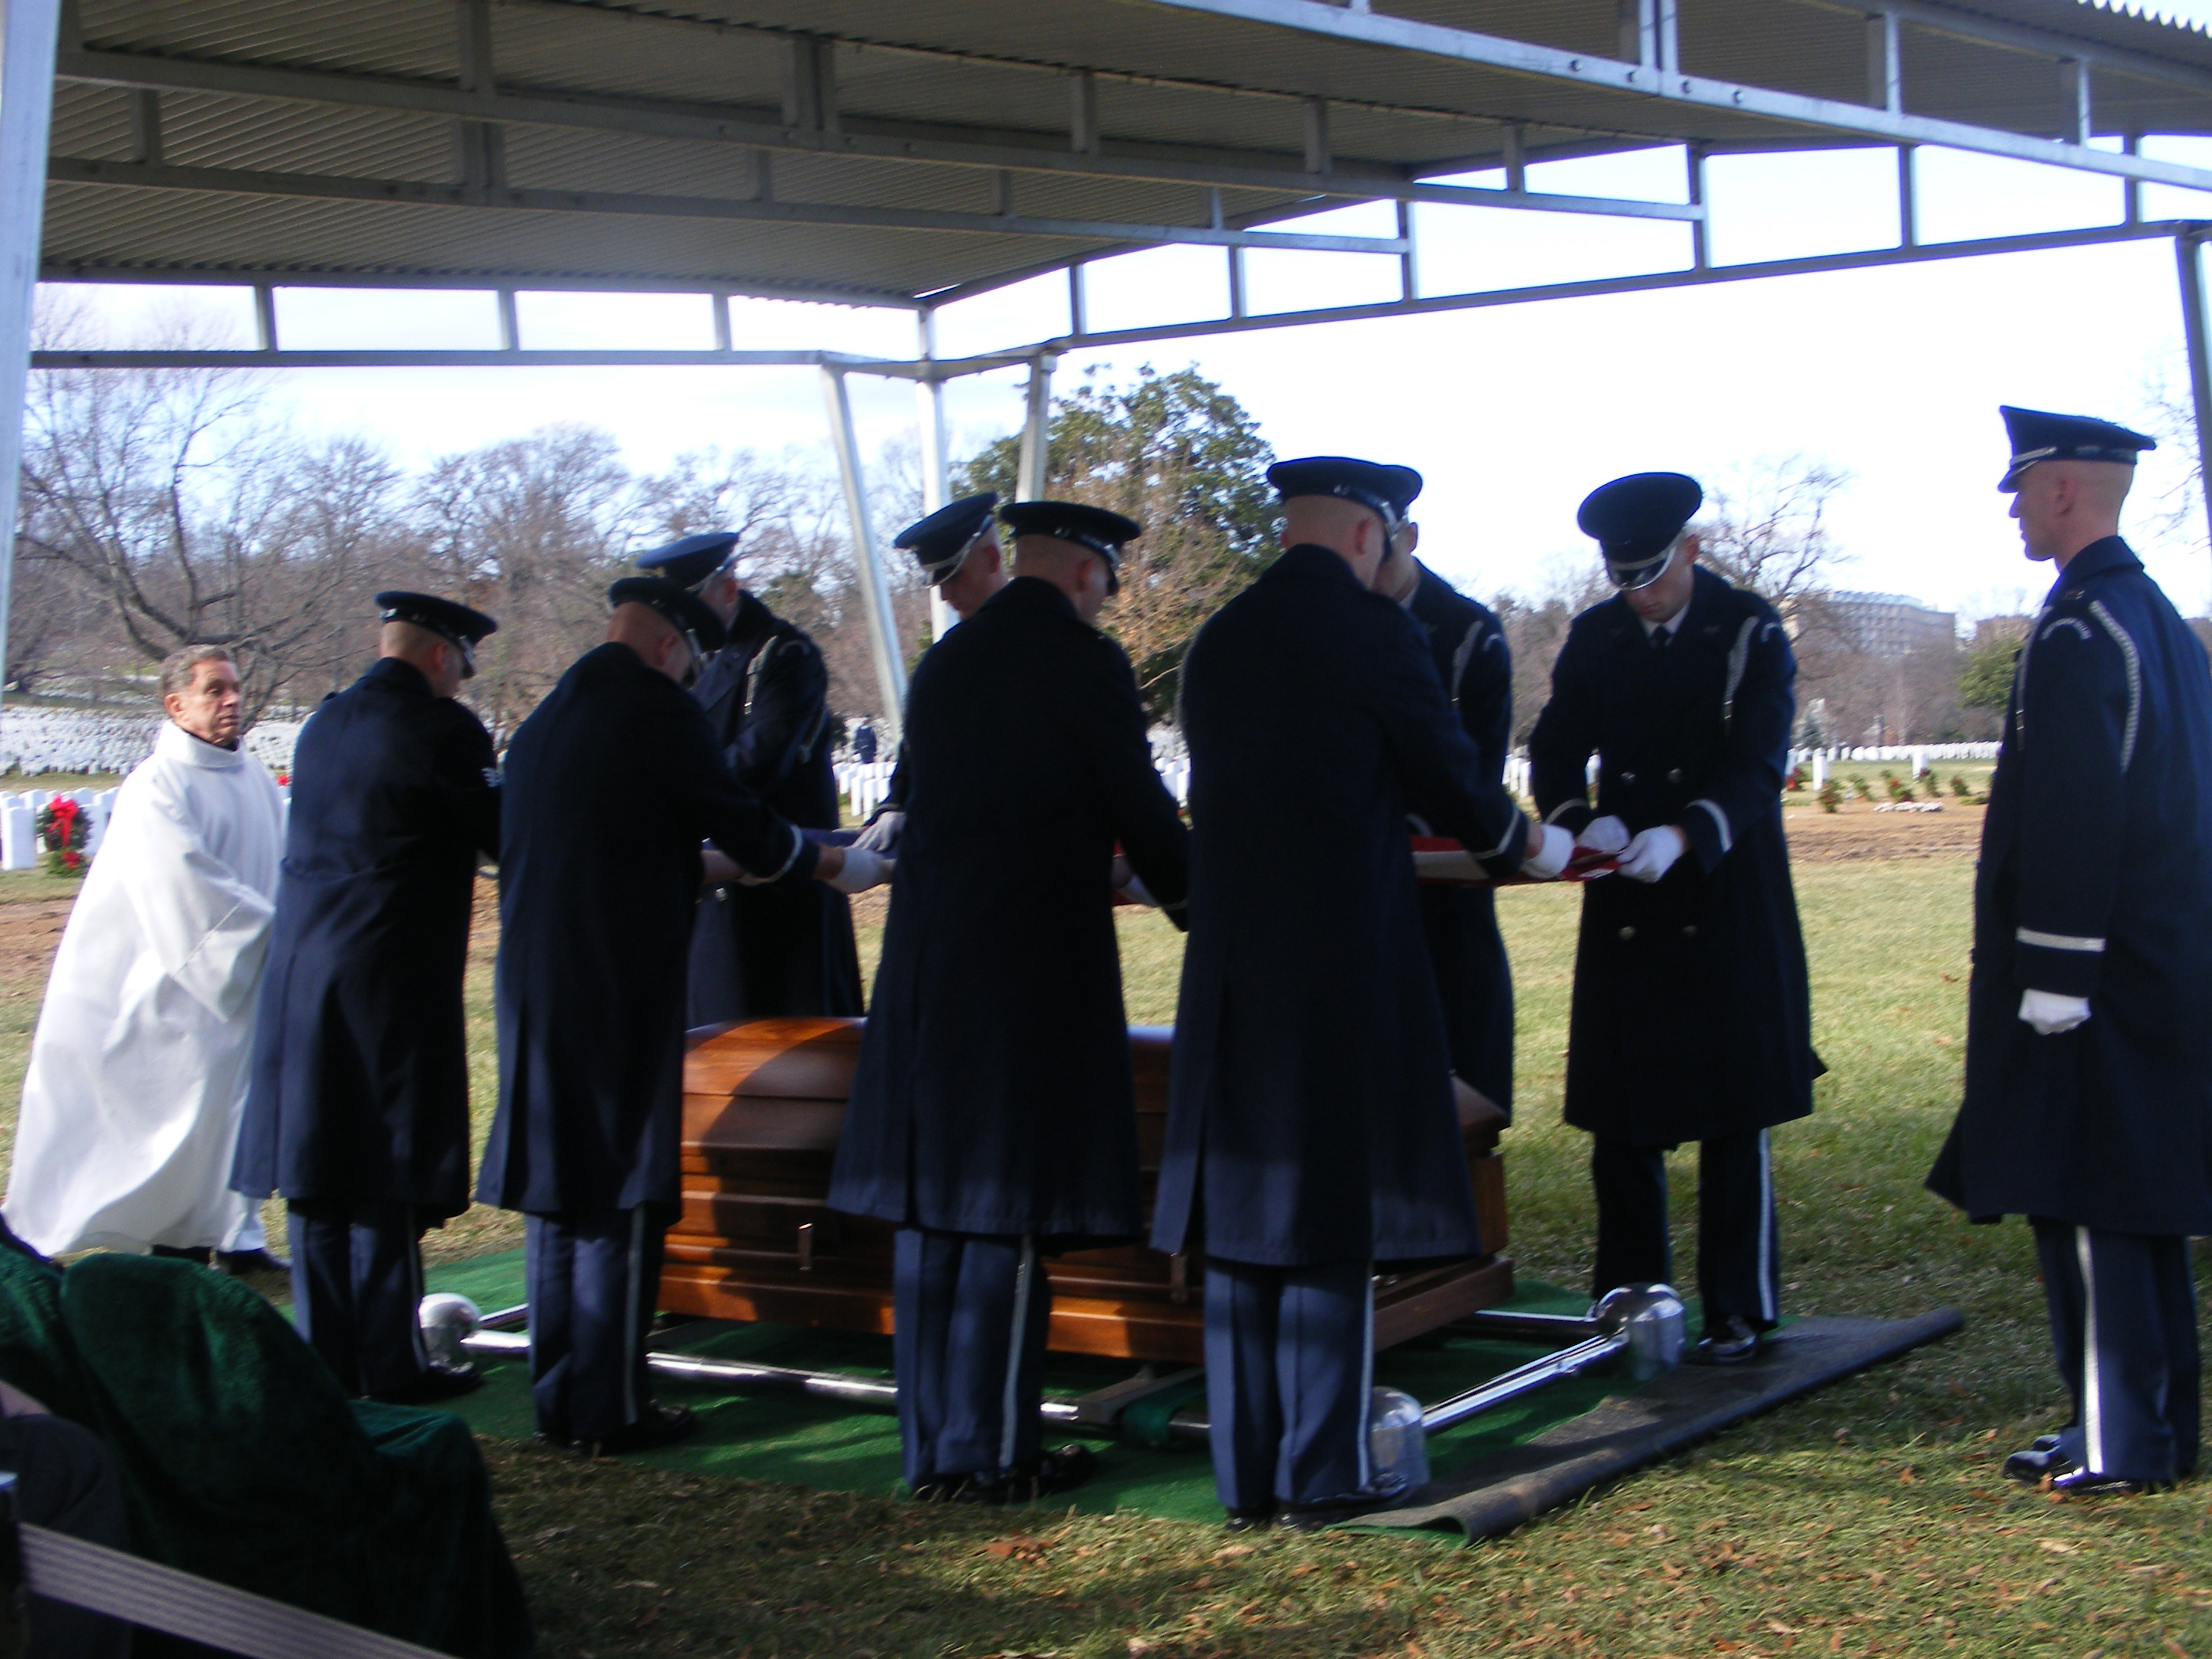 Veteran who died in 1952 finally laid to rest